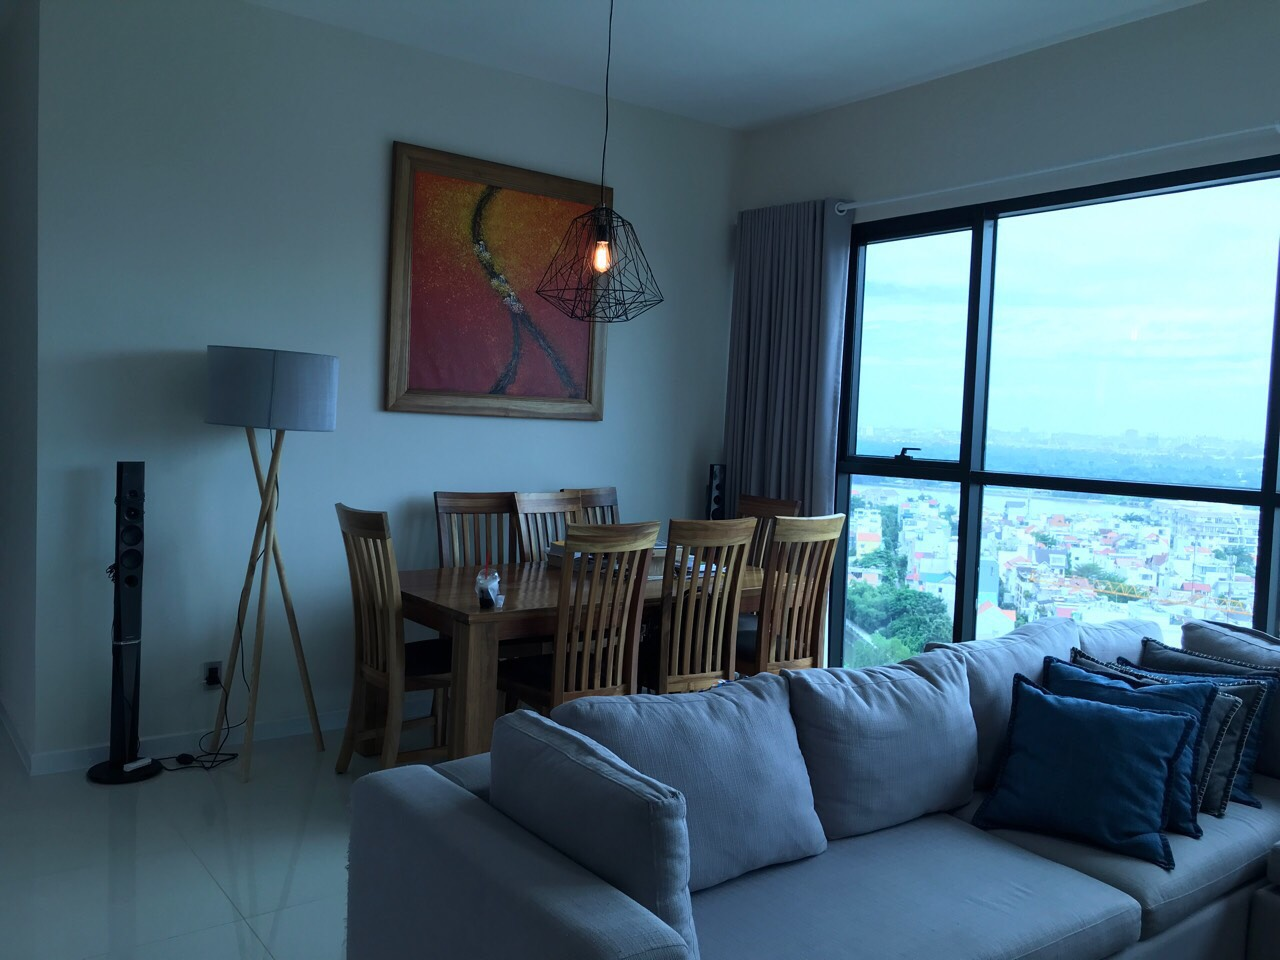 ascent apartment for rent in district 2 hcmc D217055 (7)